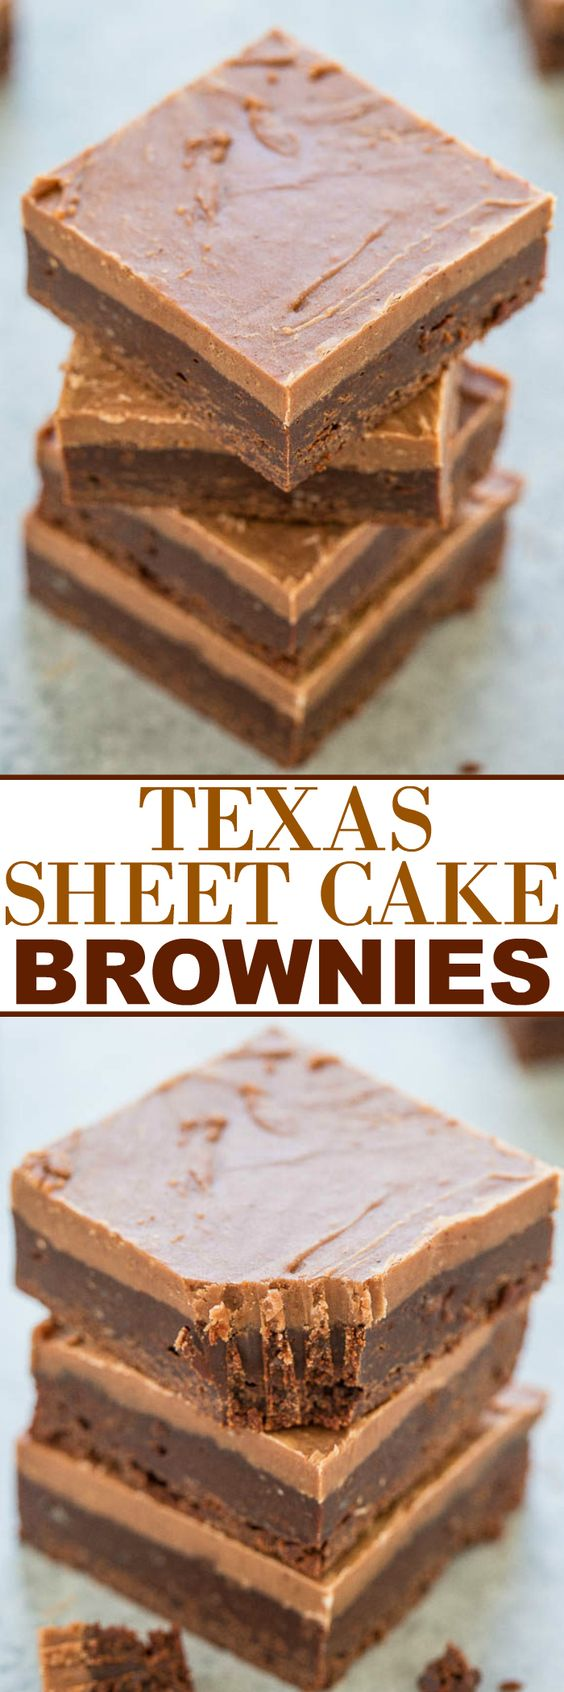 Texas Sheet Cake Brownies Dessert Recipe via Averie Cooks - Easy, FUDGY, no mixer brownies that are rich, chocolaty and decadent!! The classic Texas sheet cake frosting makes them totally IRRESISTIBLE!! The Best EASY Sheet Cakes Recipes - Simple and Quick Party Crowds Desserts for Holidays, Special Occasions and Family Celebrations